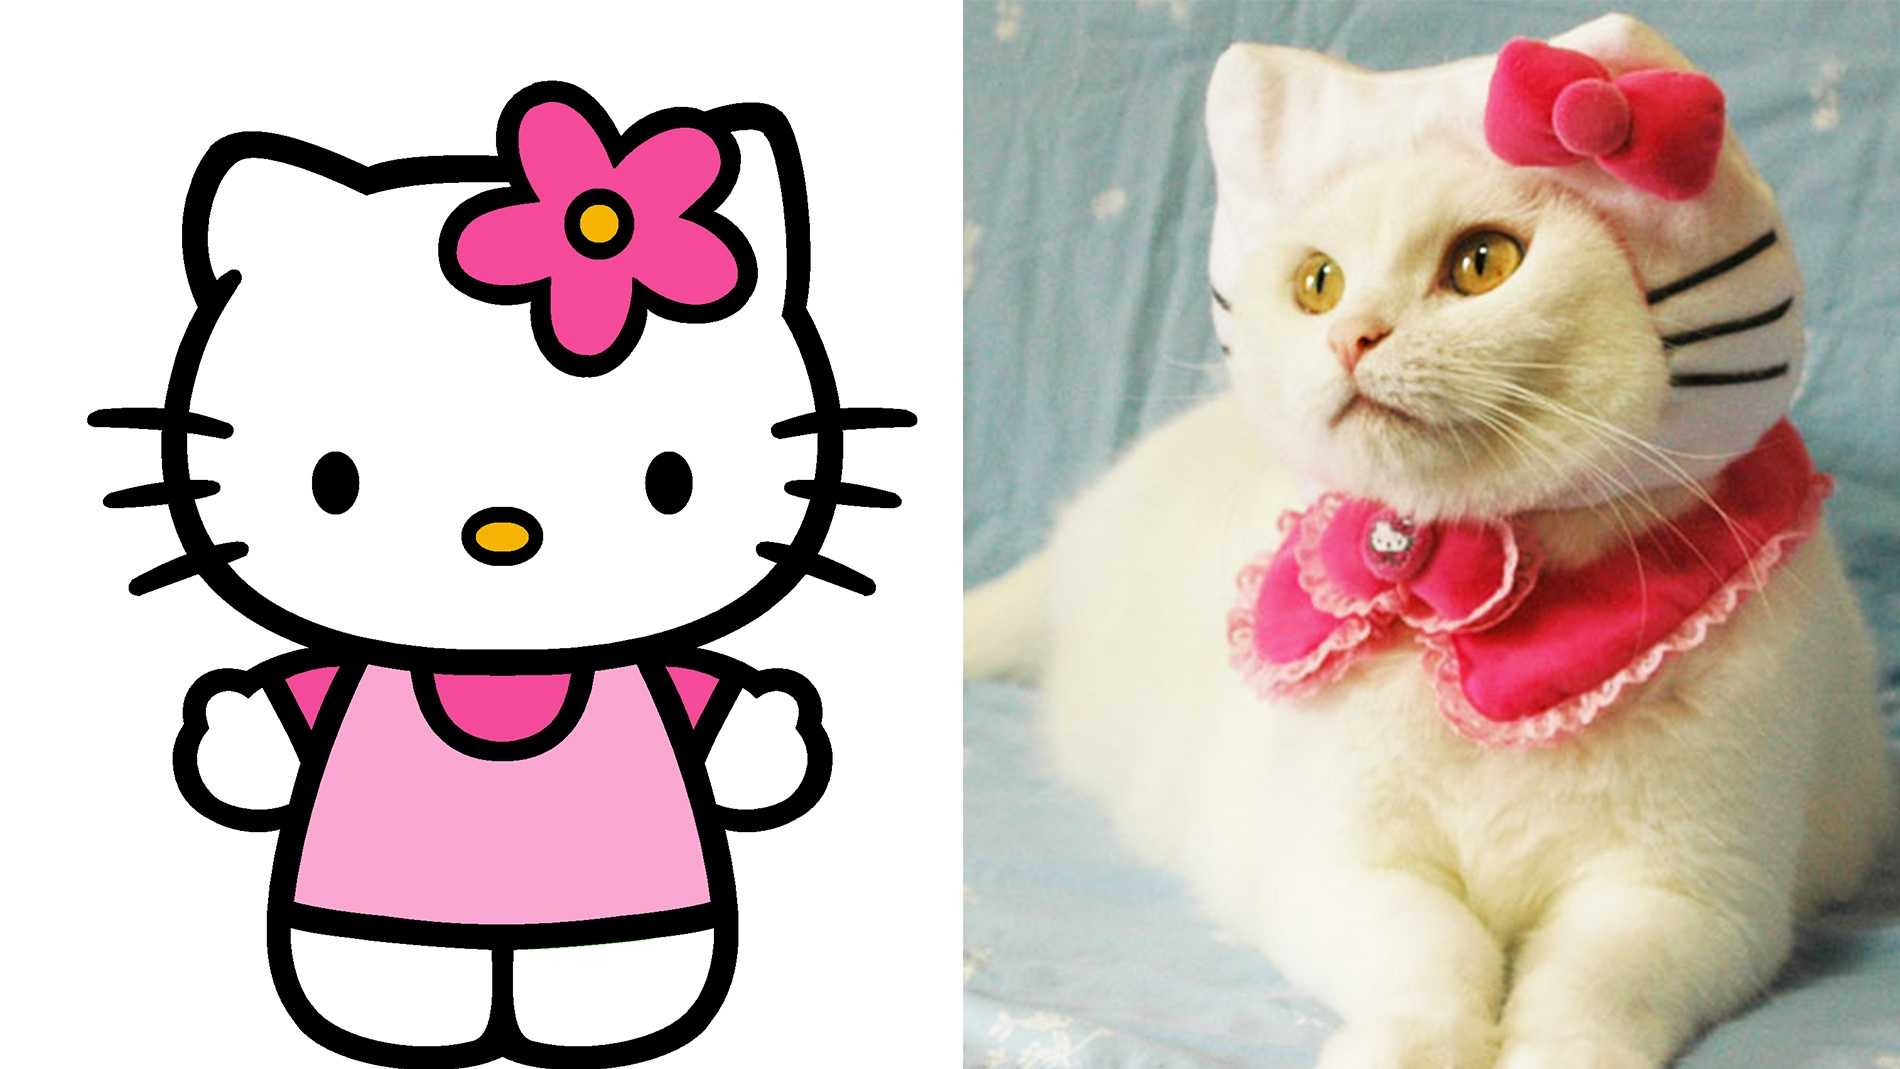 Apparently, Hello Kitty is not a cat.